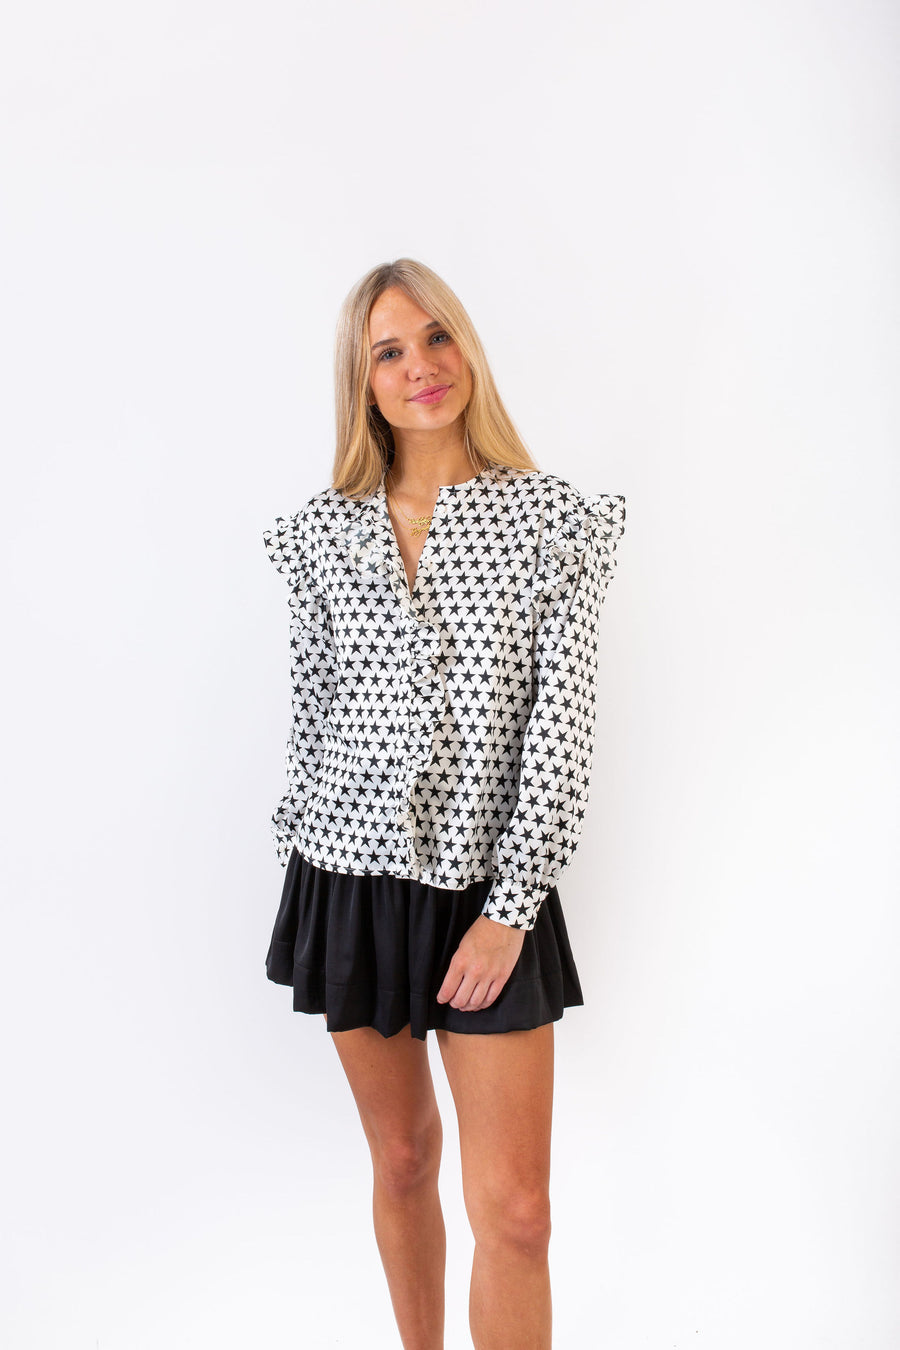 IRIS TOP BLACK AND WHITE STARS *LIMITED*EDITION*